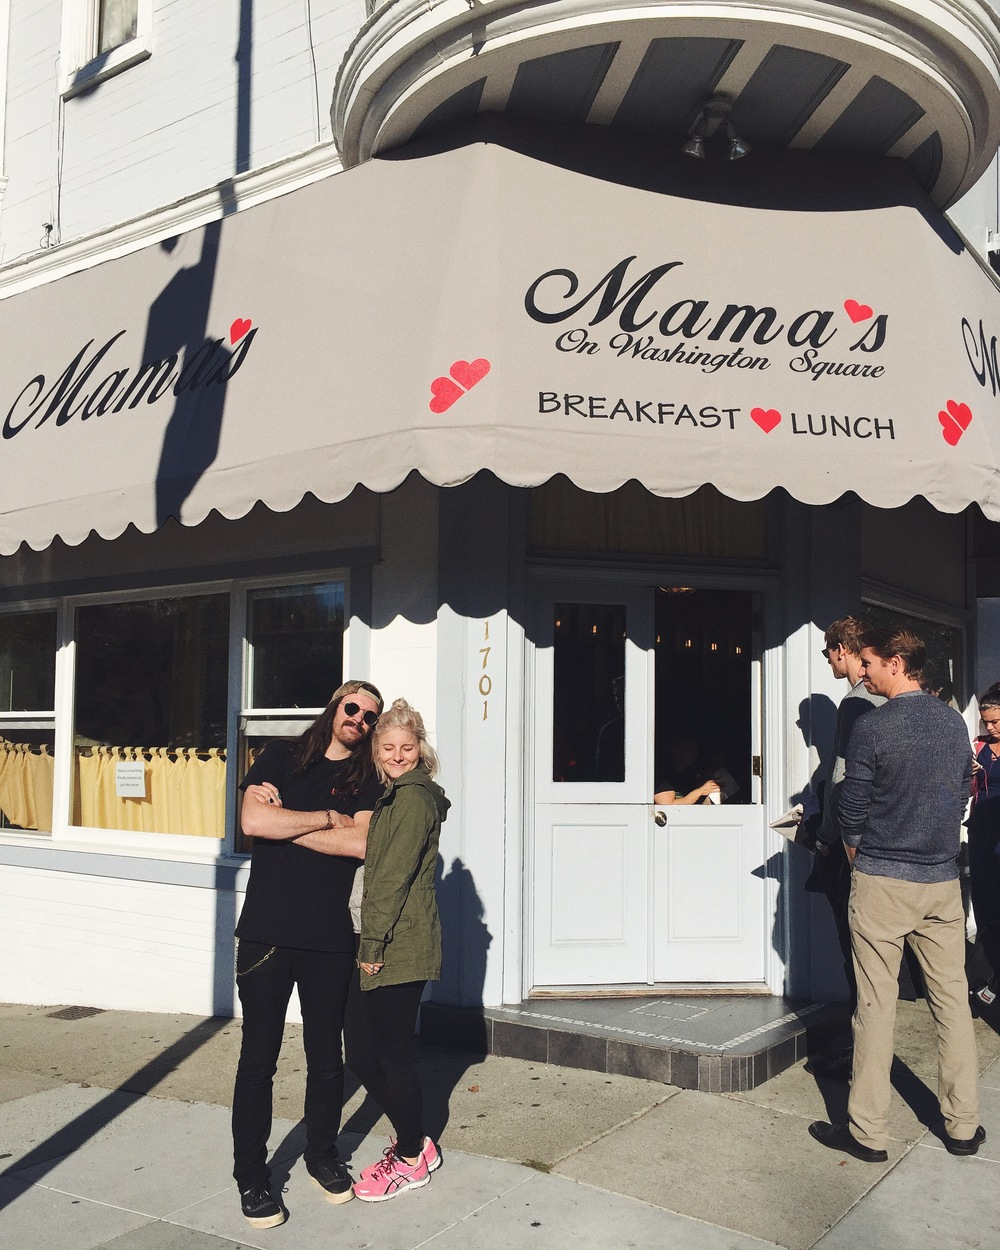 Breakfast will never be the same. If you make it to SF, don't leave without eating at Mama's!